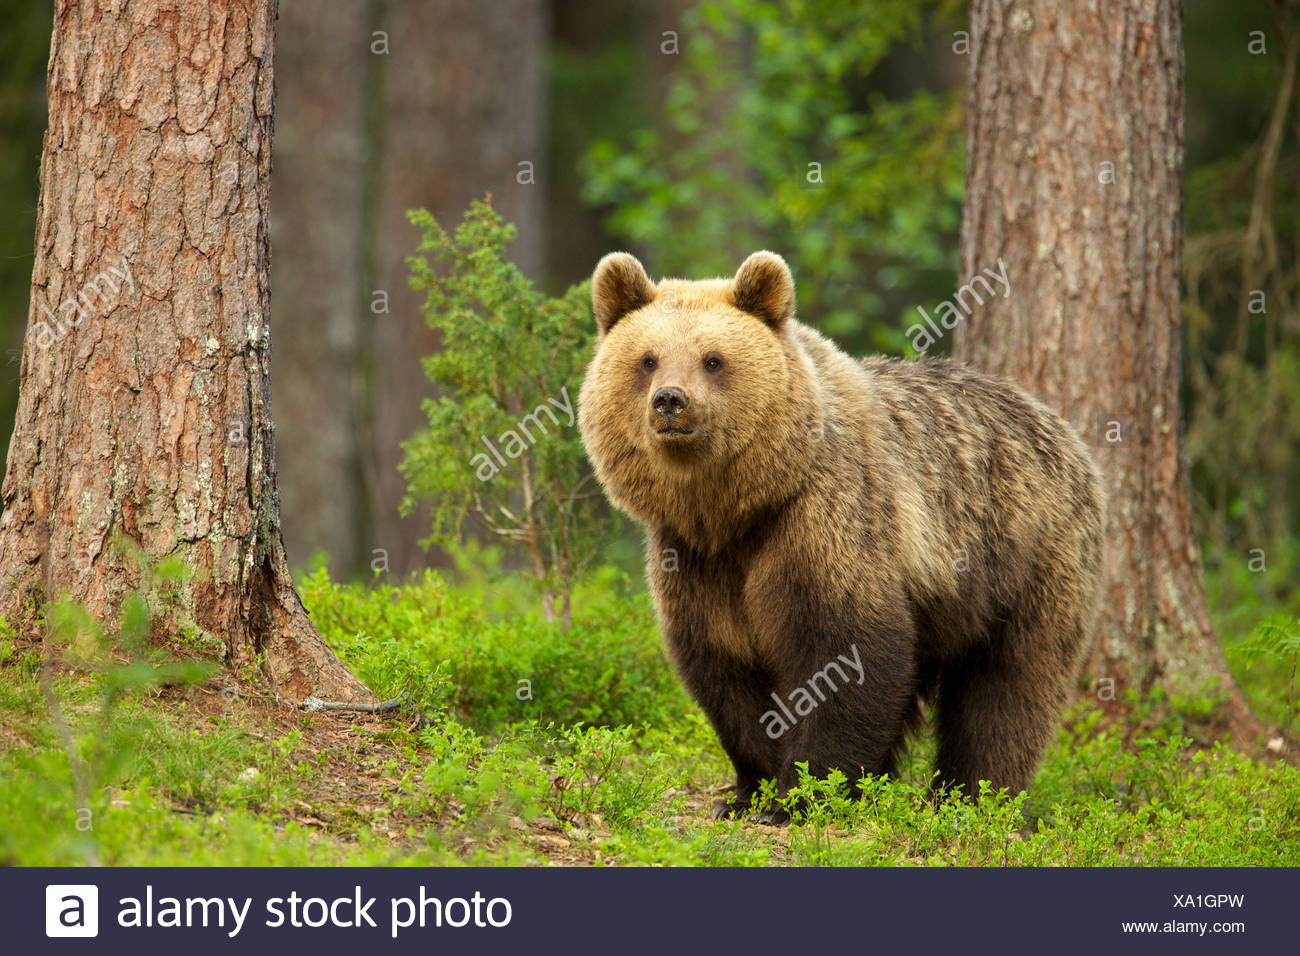 Brown bear walking through forest, Taiga Forest, Finland - Stock Image